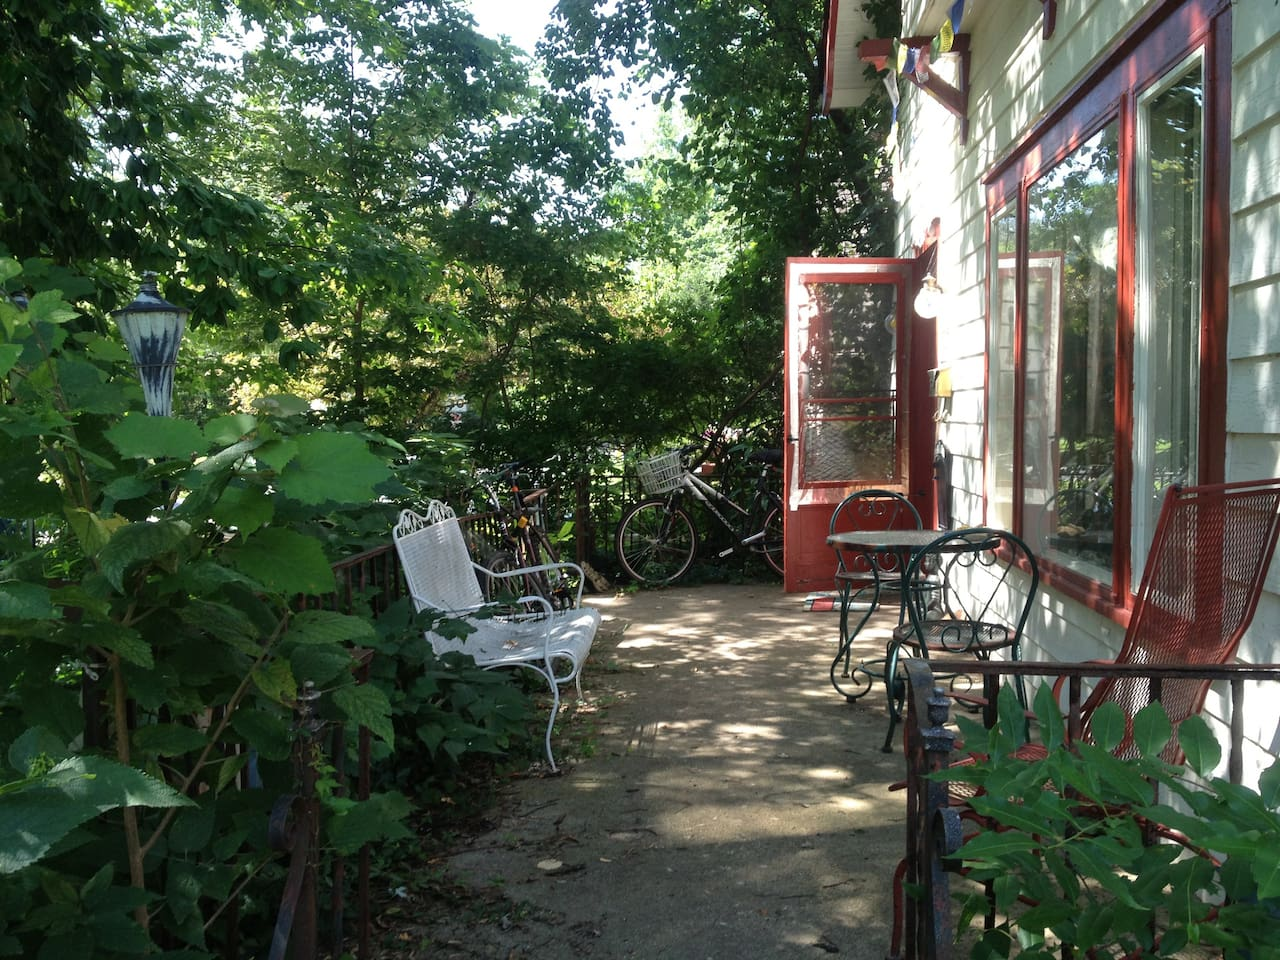 Our convivial, shady front porch.